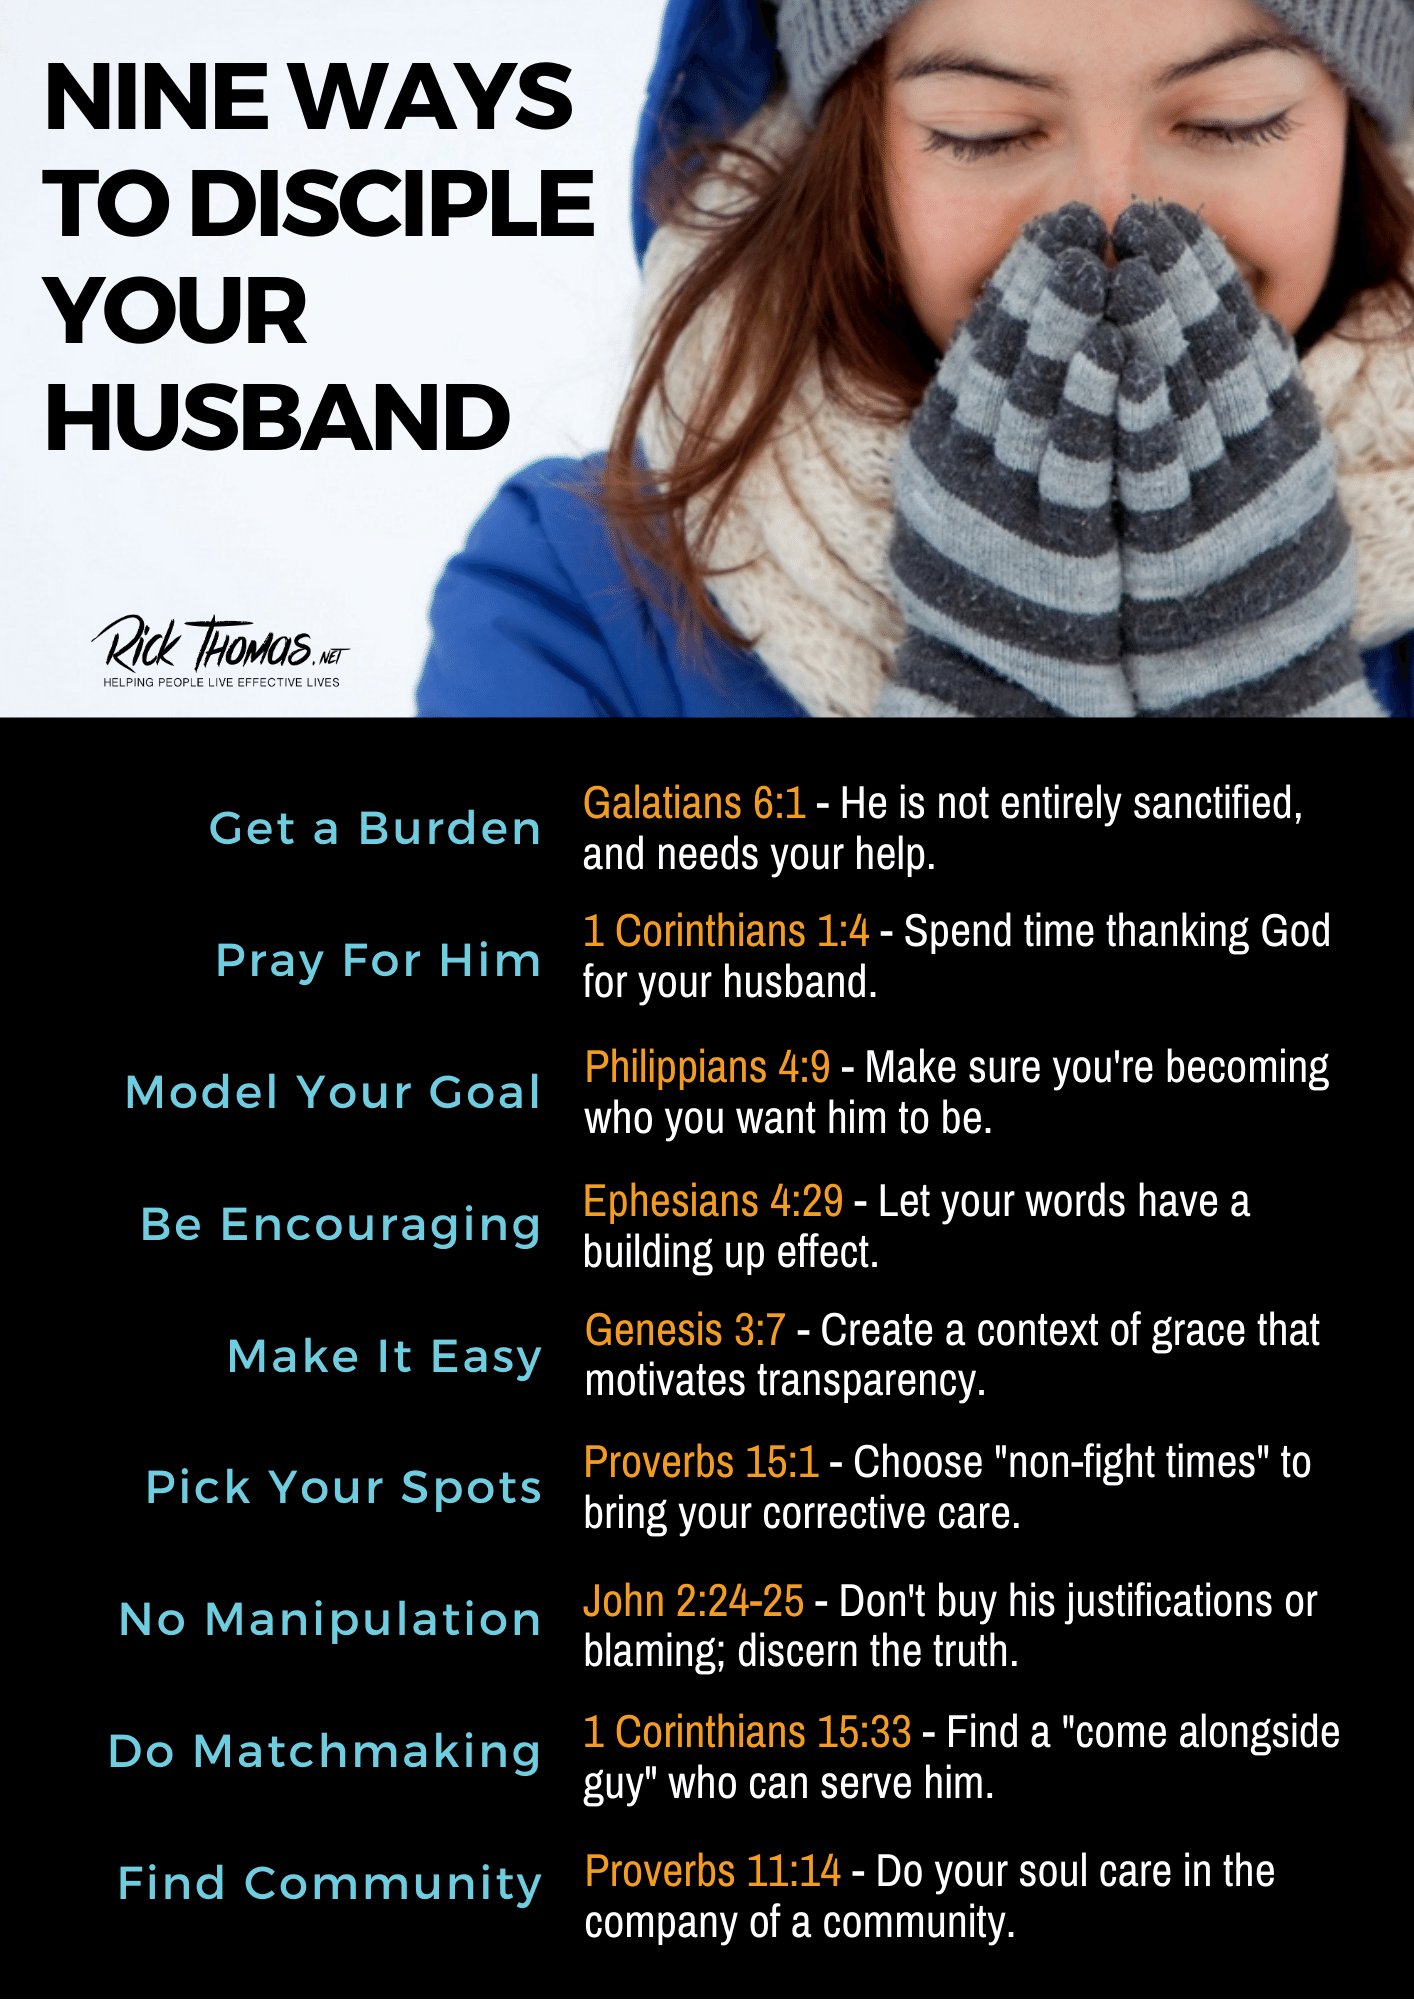 Nine Ways To Disciple Your Husband